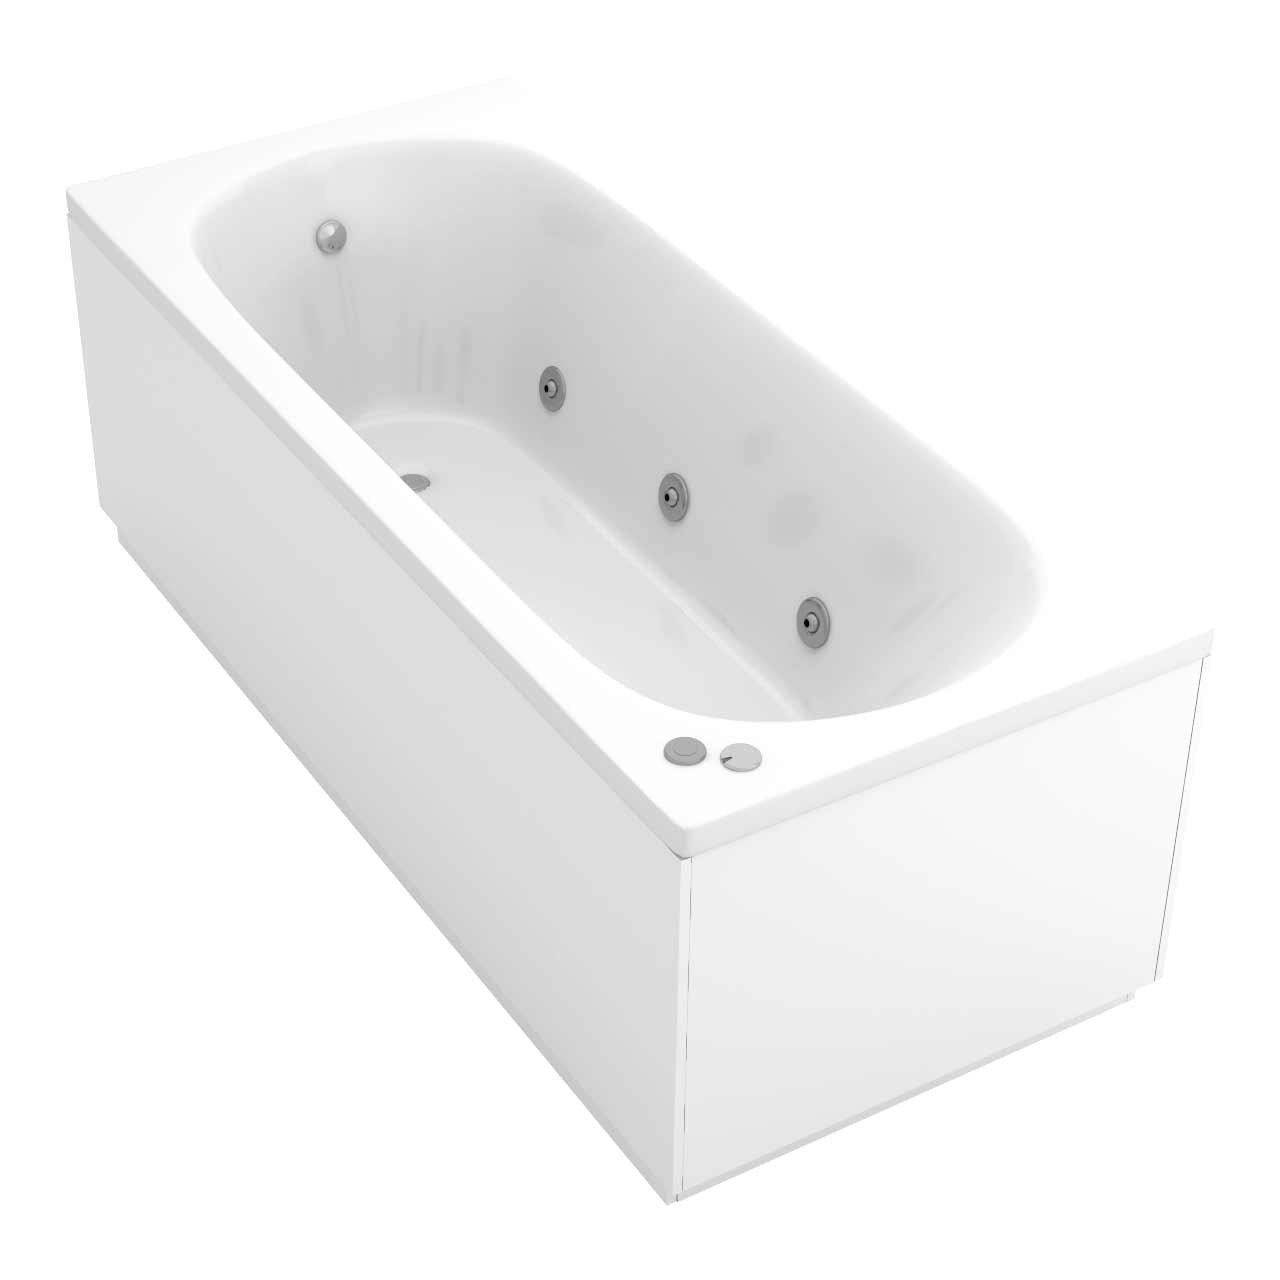 Compact End Tap 6 Jet Chrome V-Tec Whirlpool Bath 1600x700